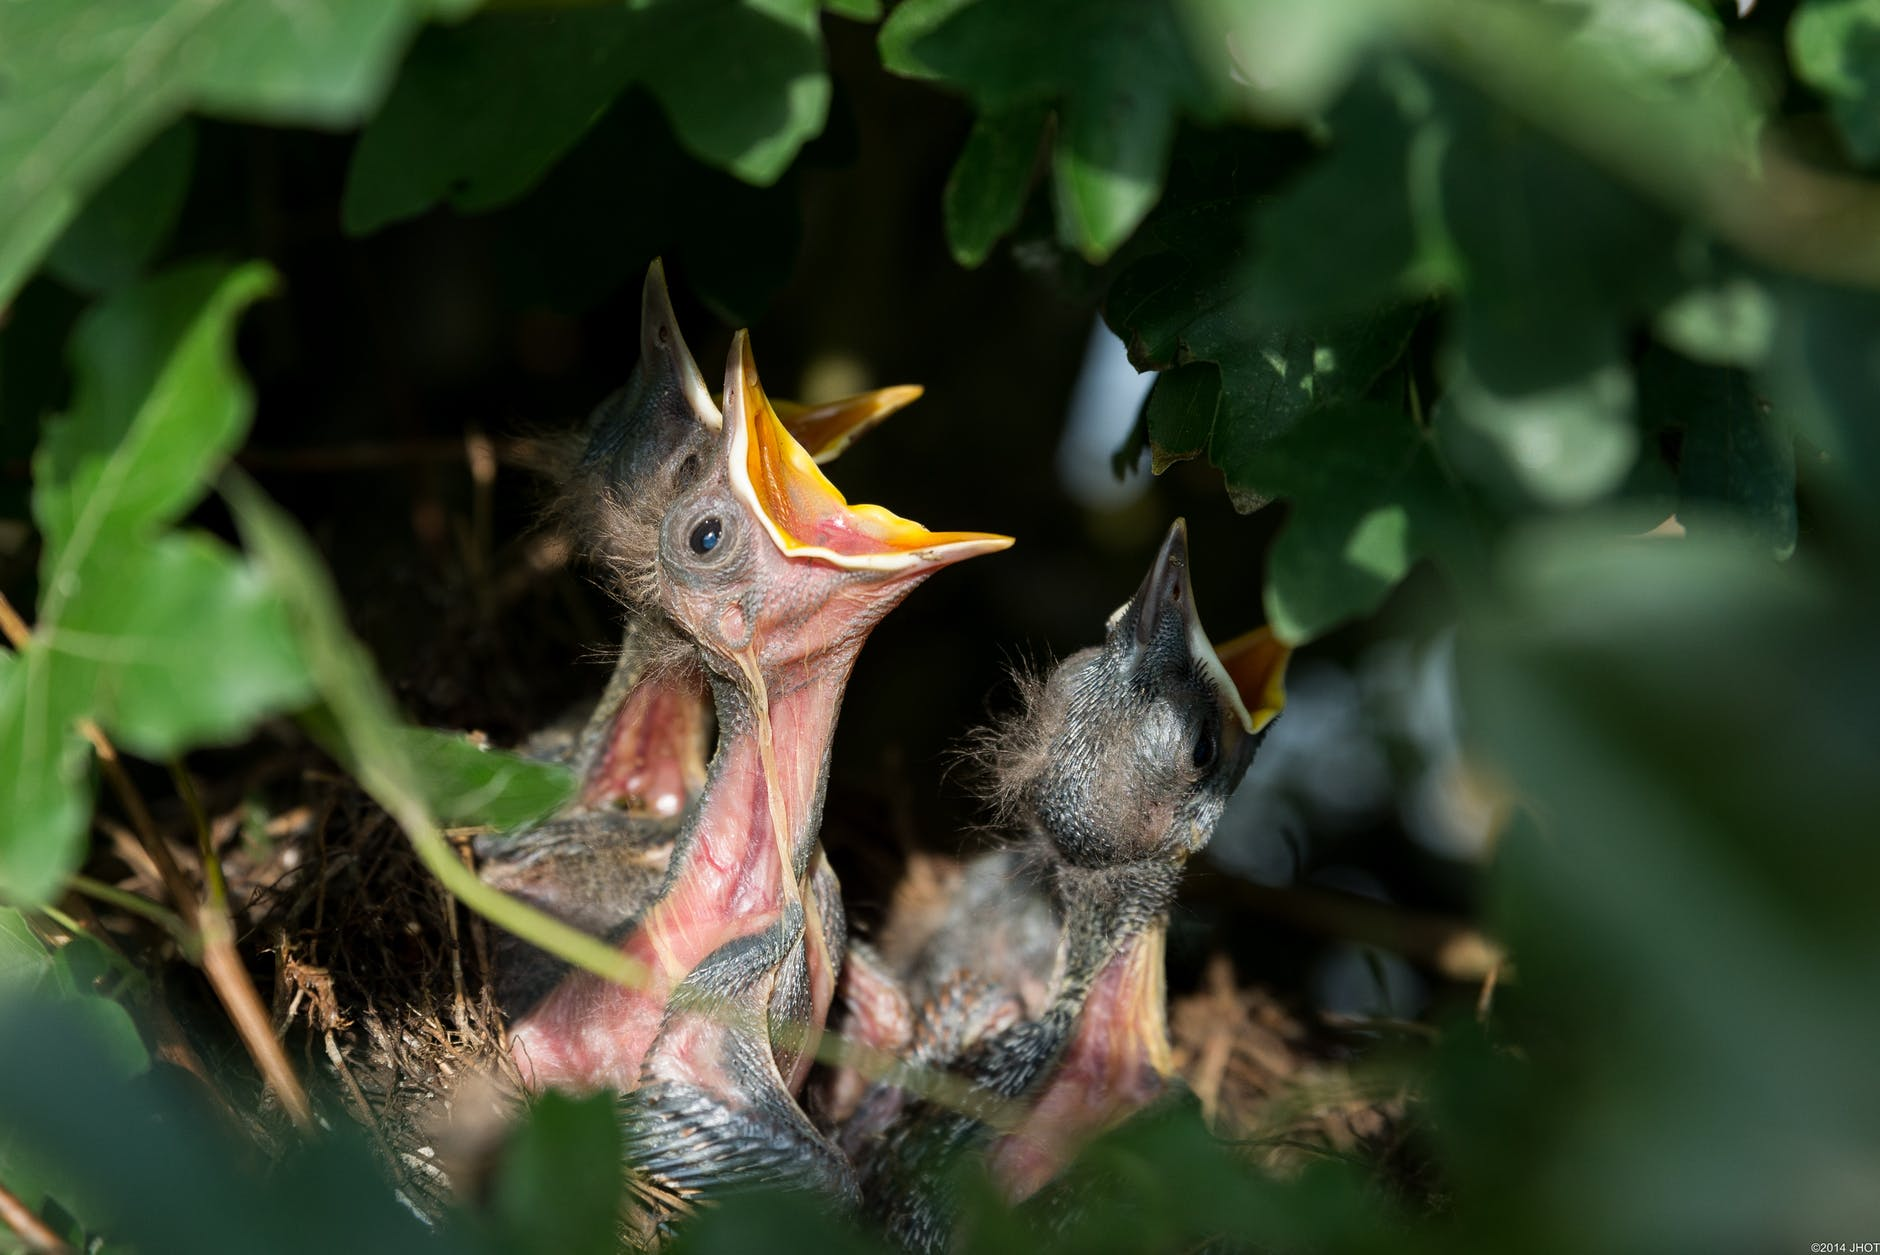 three baby birds in a nest with open mouths